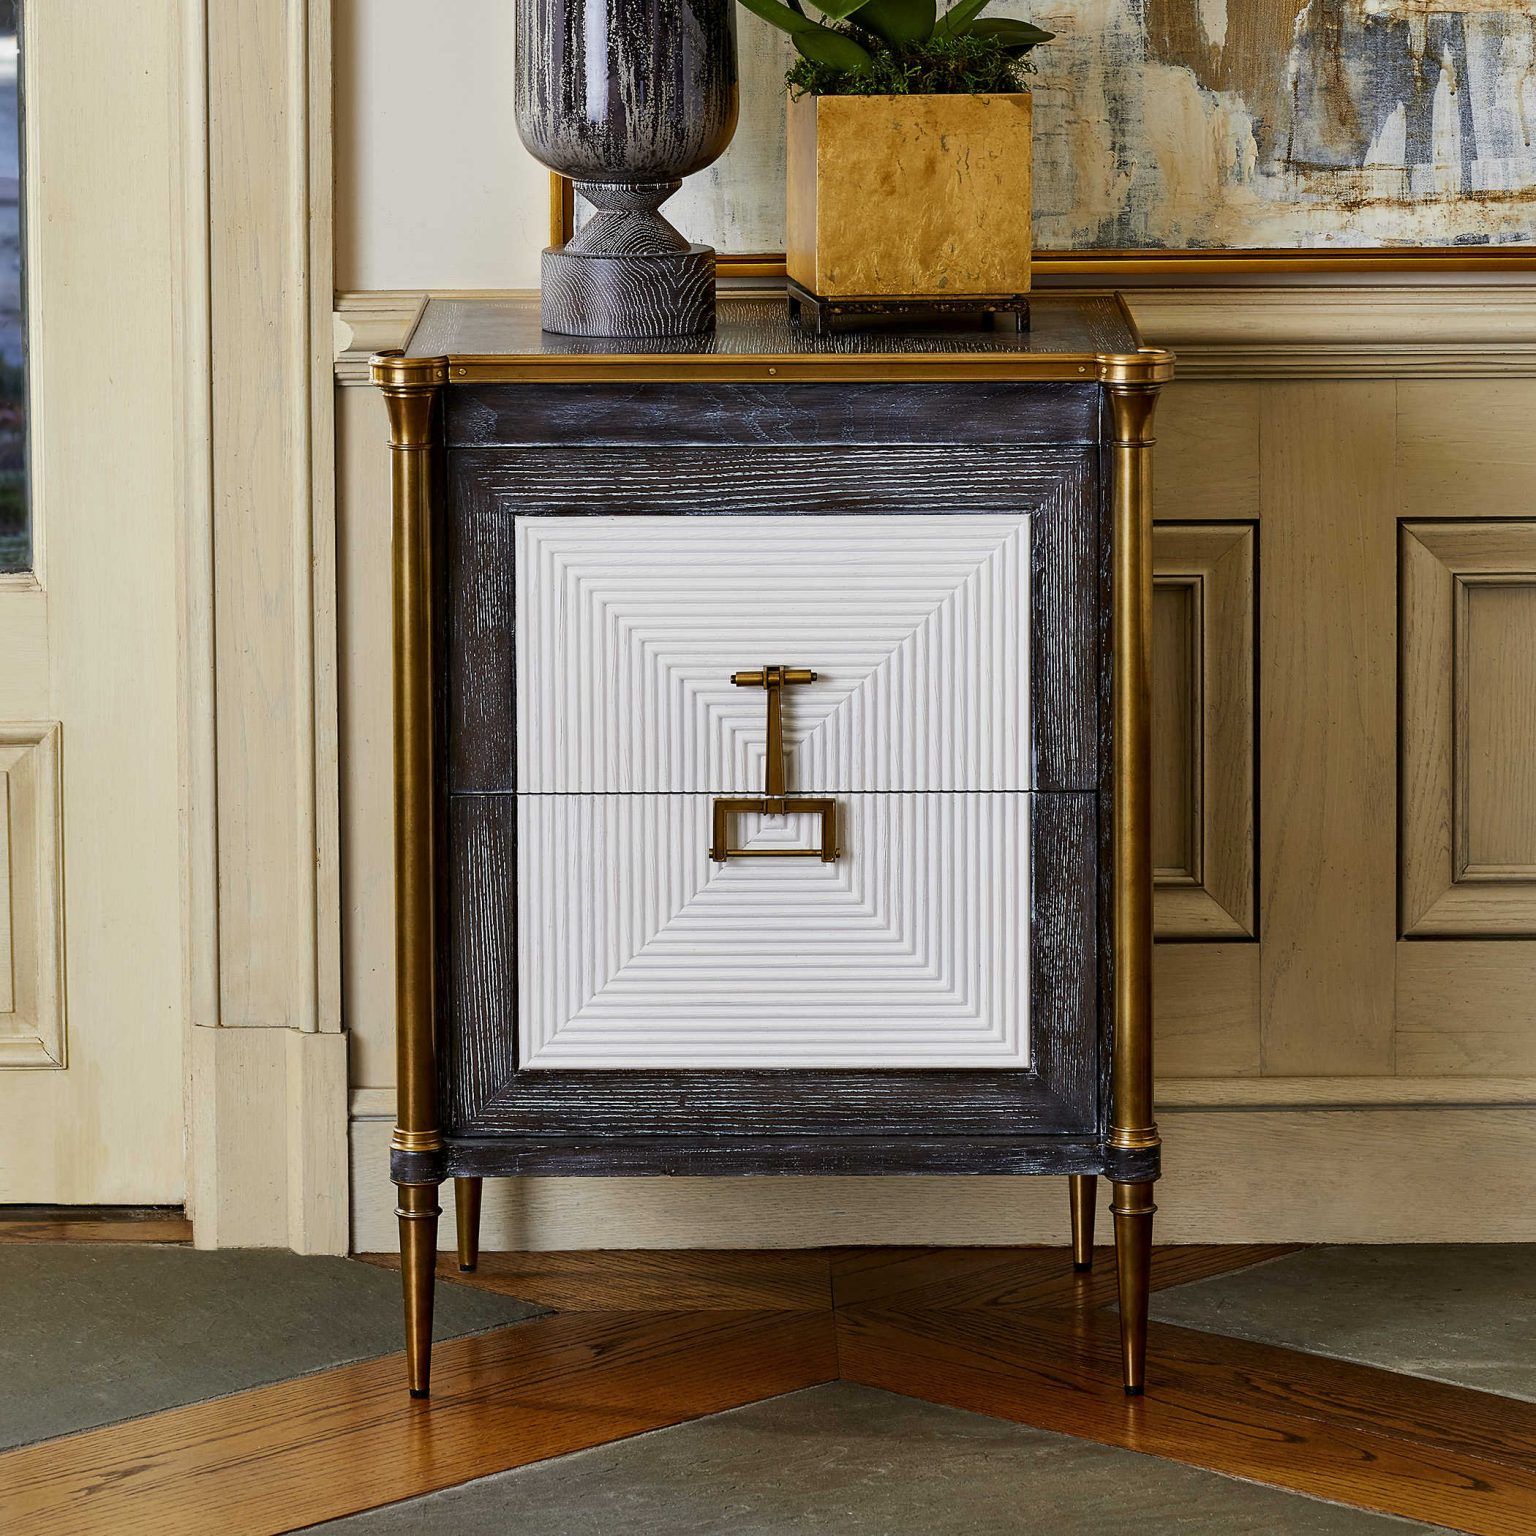 Antique-looking side table with gold and white detailing is granny chic